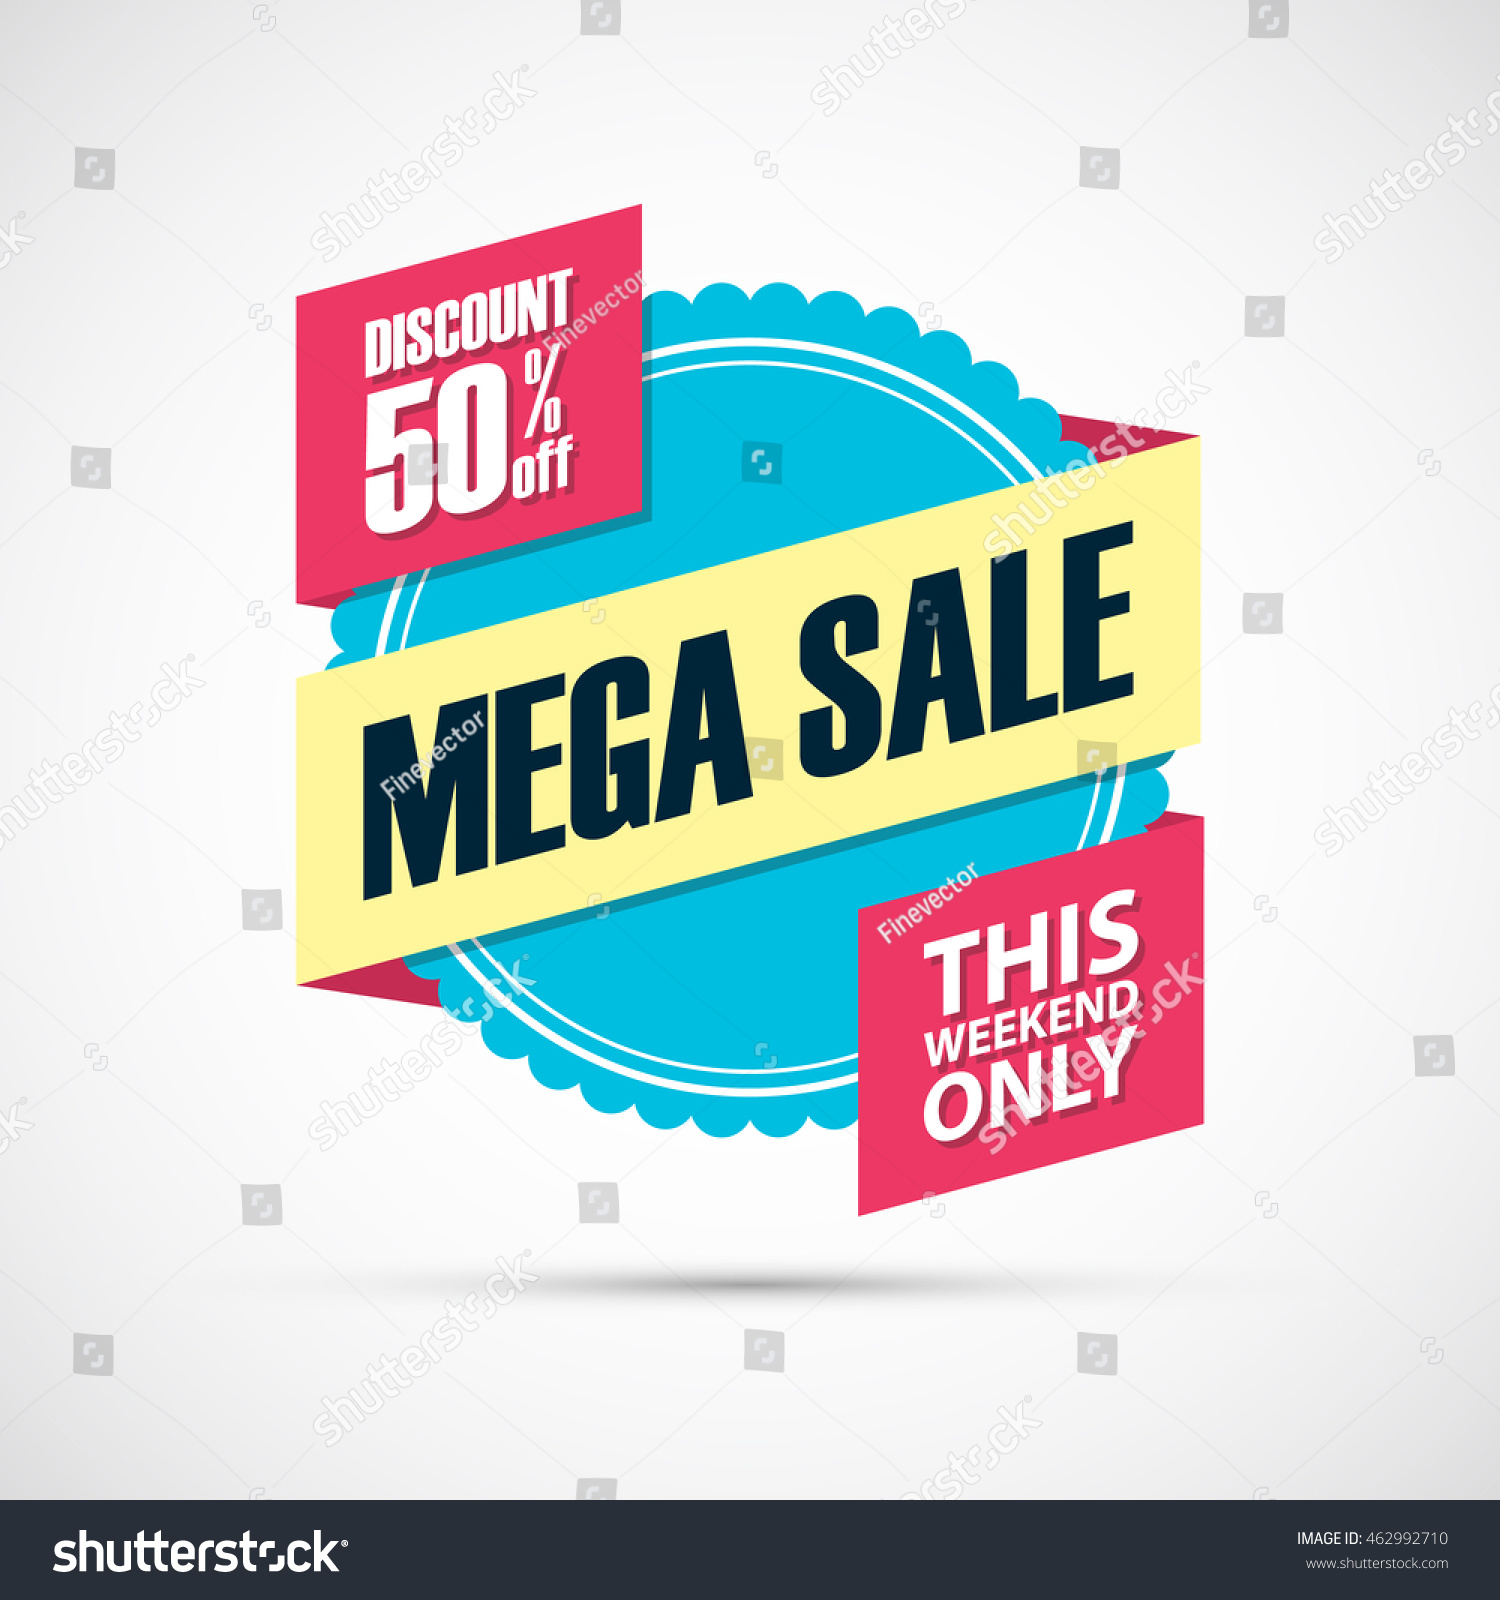 Weekend Discount: Mega Sale This Weekend Special Offer Stock Vector